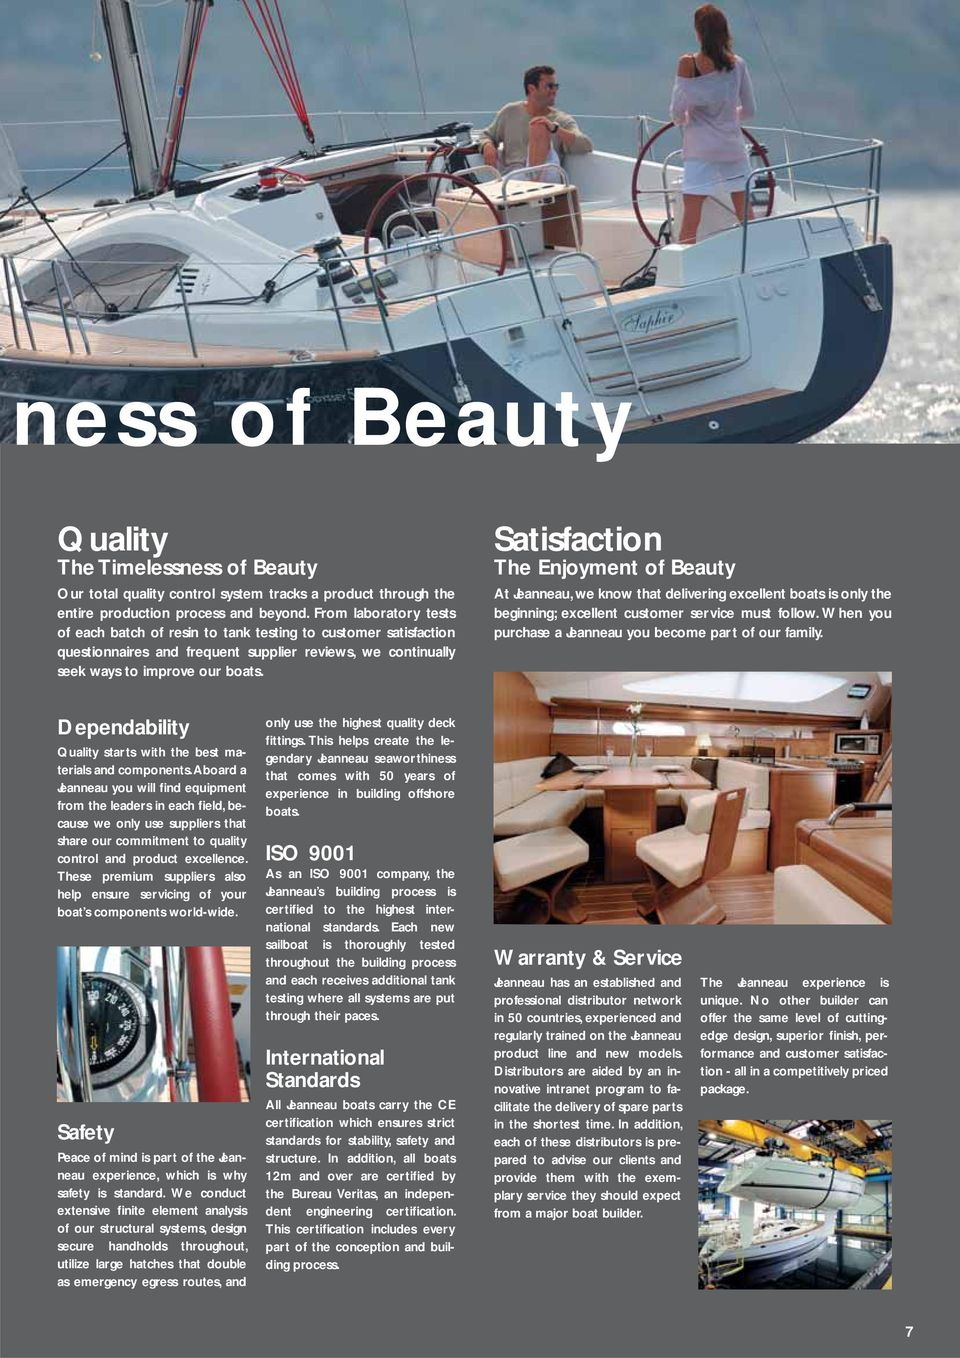 Satisfaction The Enjoyment of Beauty At Jeanneau, we know that delivering excellent boats is only the beginning; excellent customer service must follow.